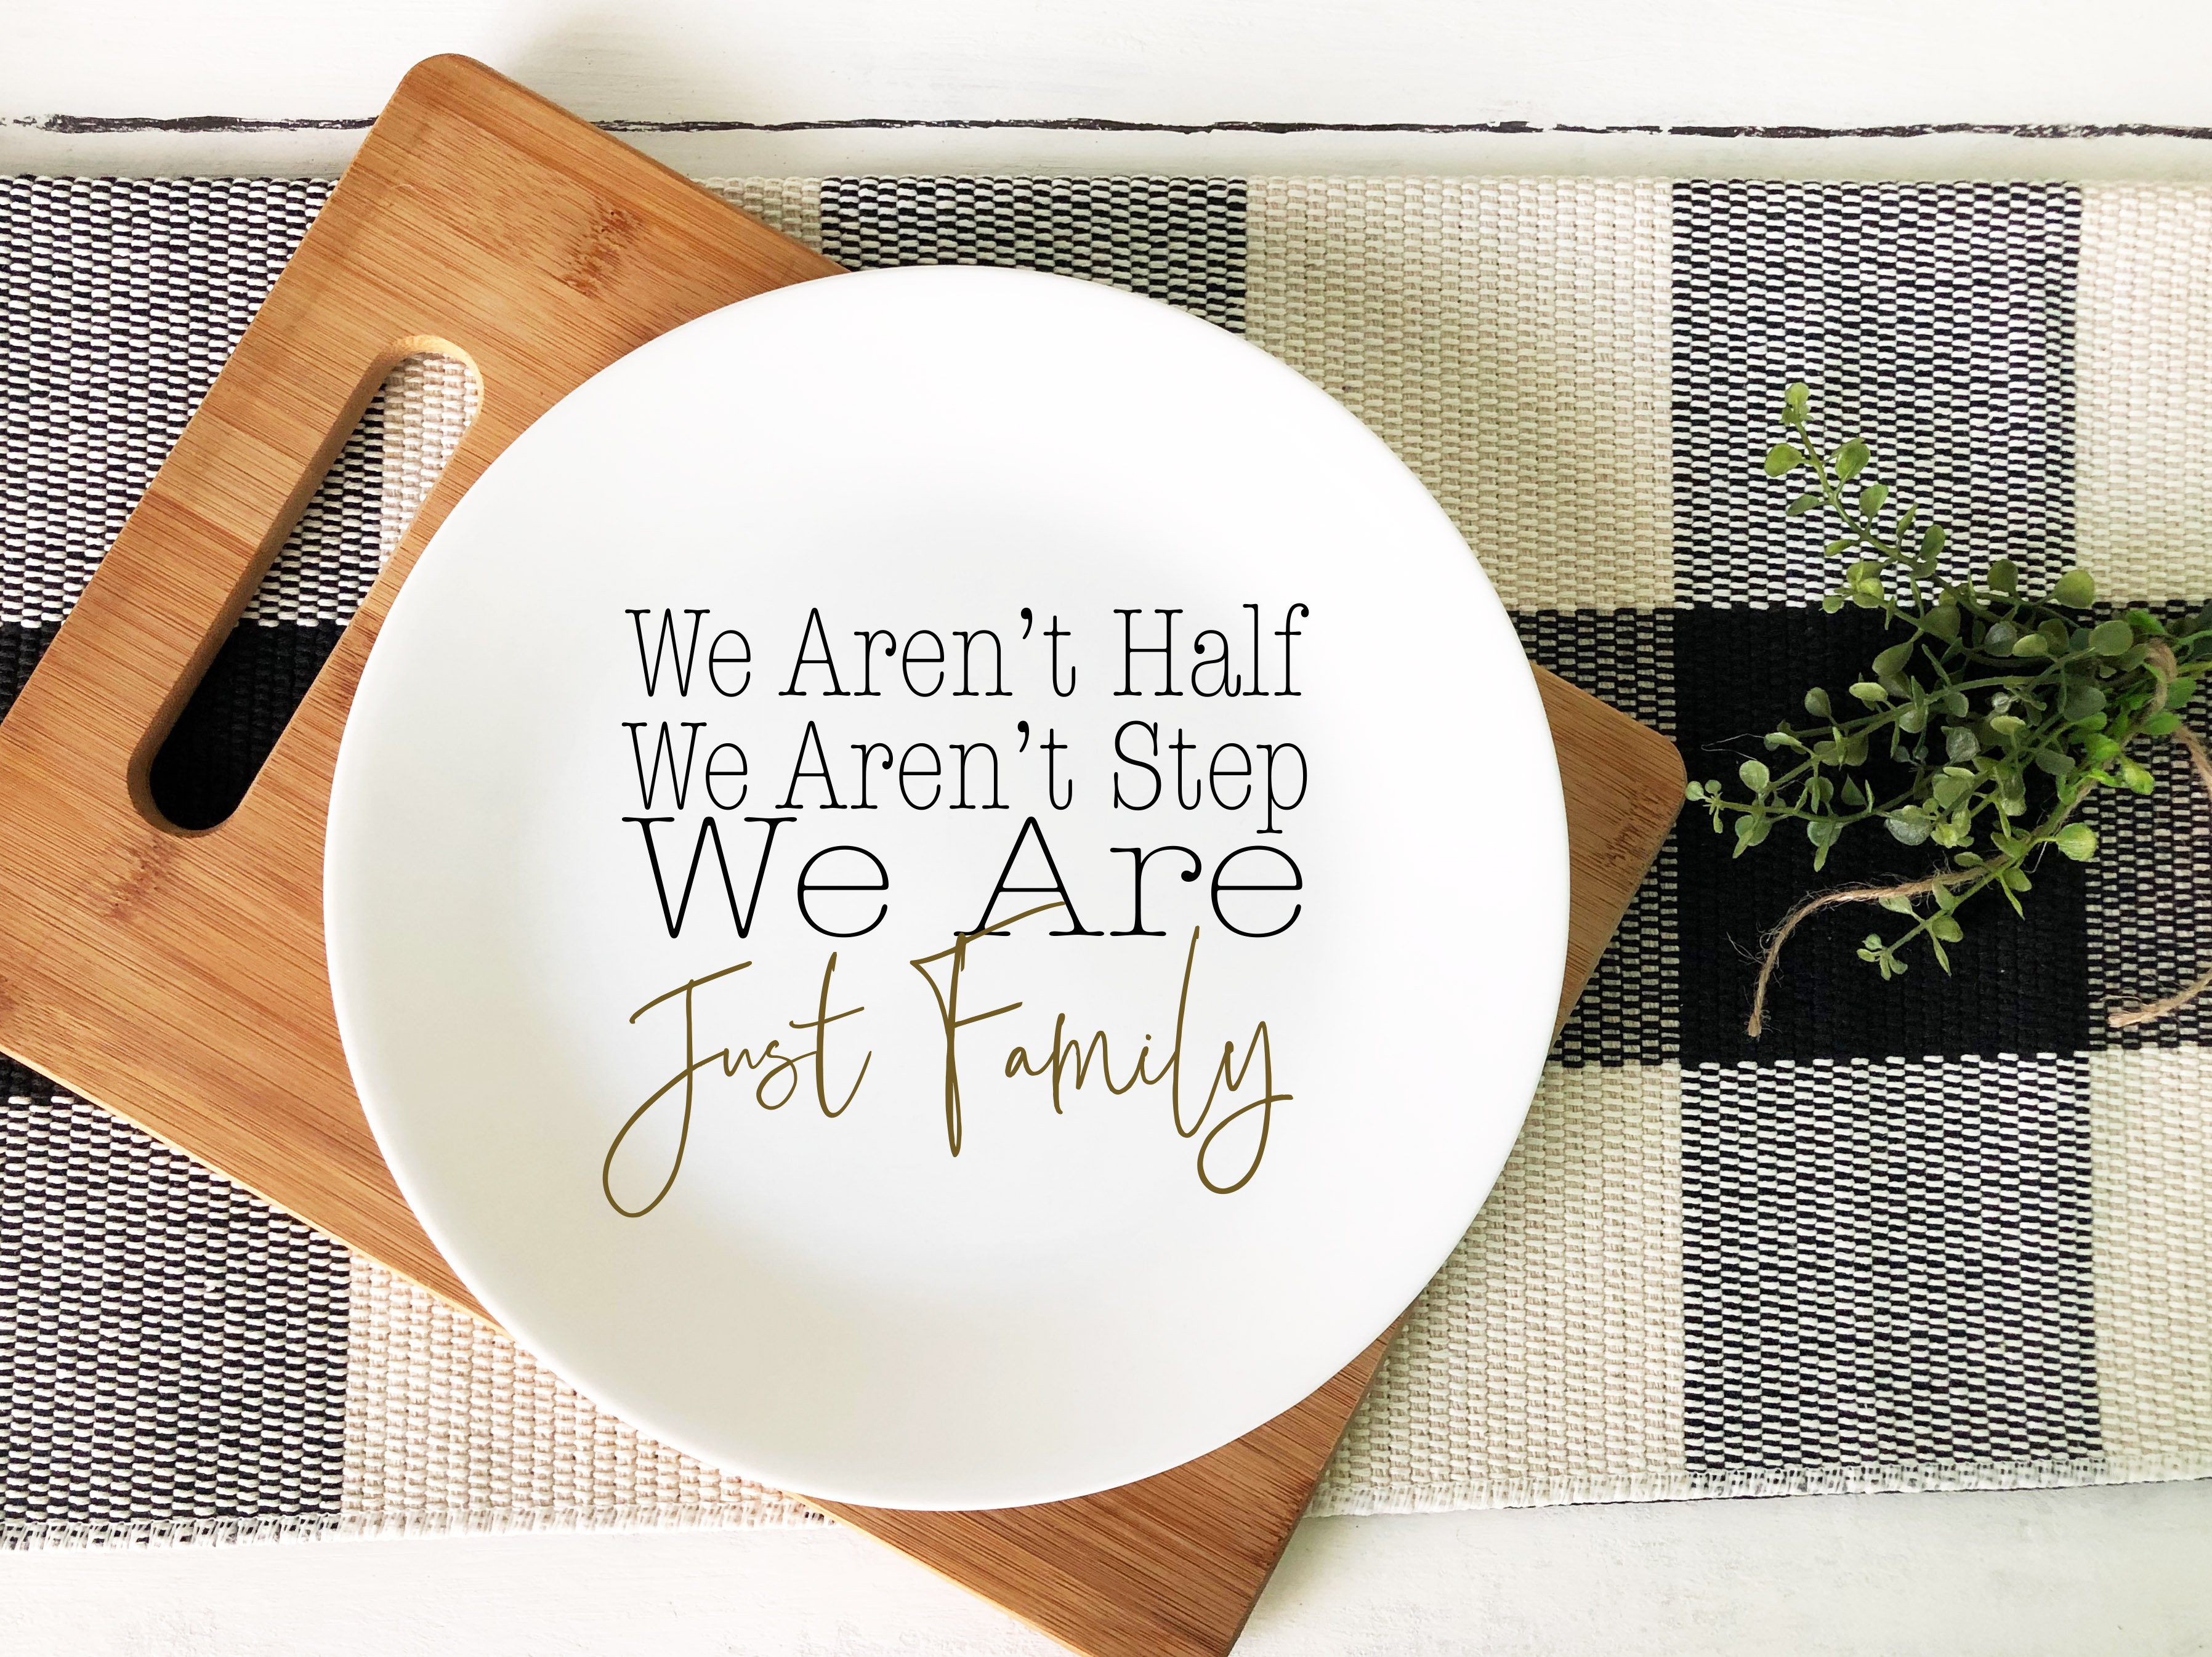 Image of a plate that says we aren't half, we aren't step, we are just family with a carving board and black and white checkered table cloth in background.